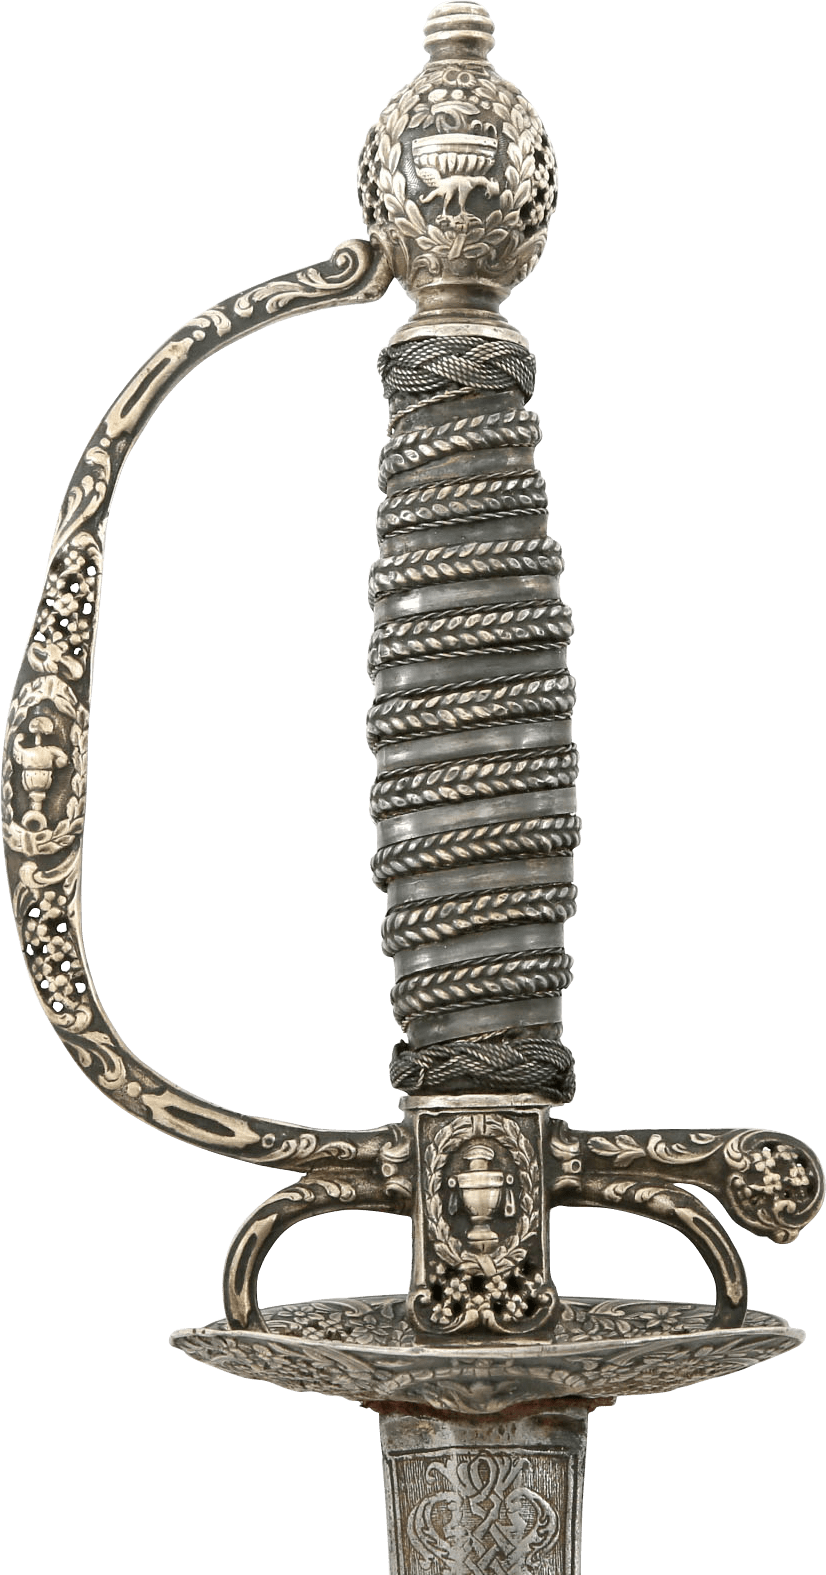 MAGNIFICENT SILVER HILTED SMALLSWORD C.1750-60 - Fagan Arms